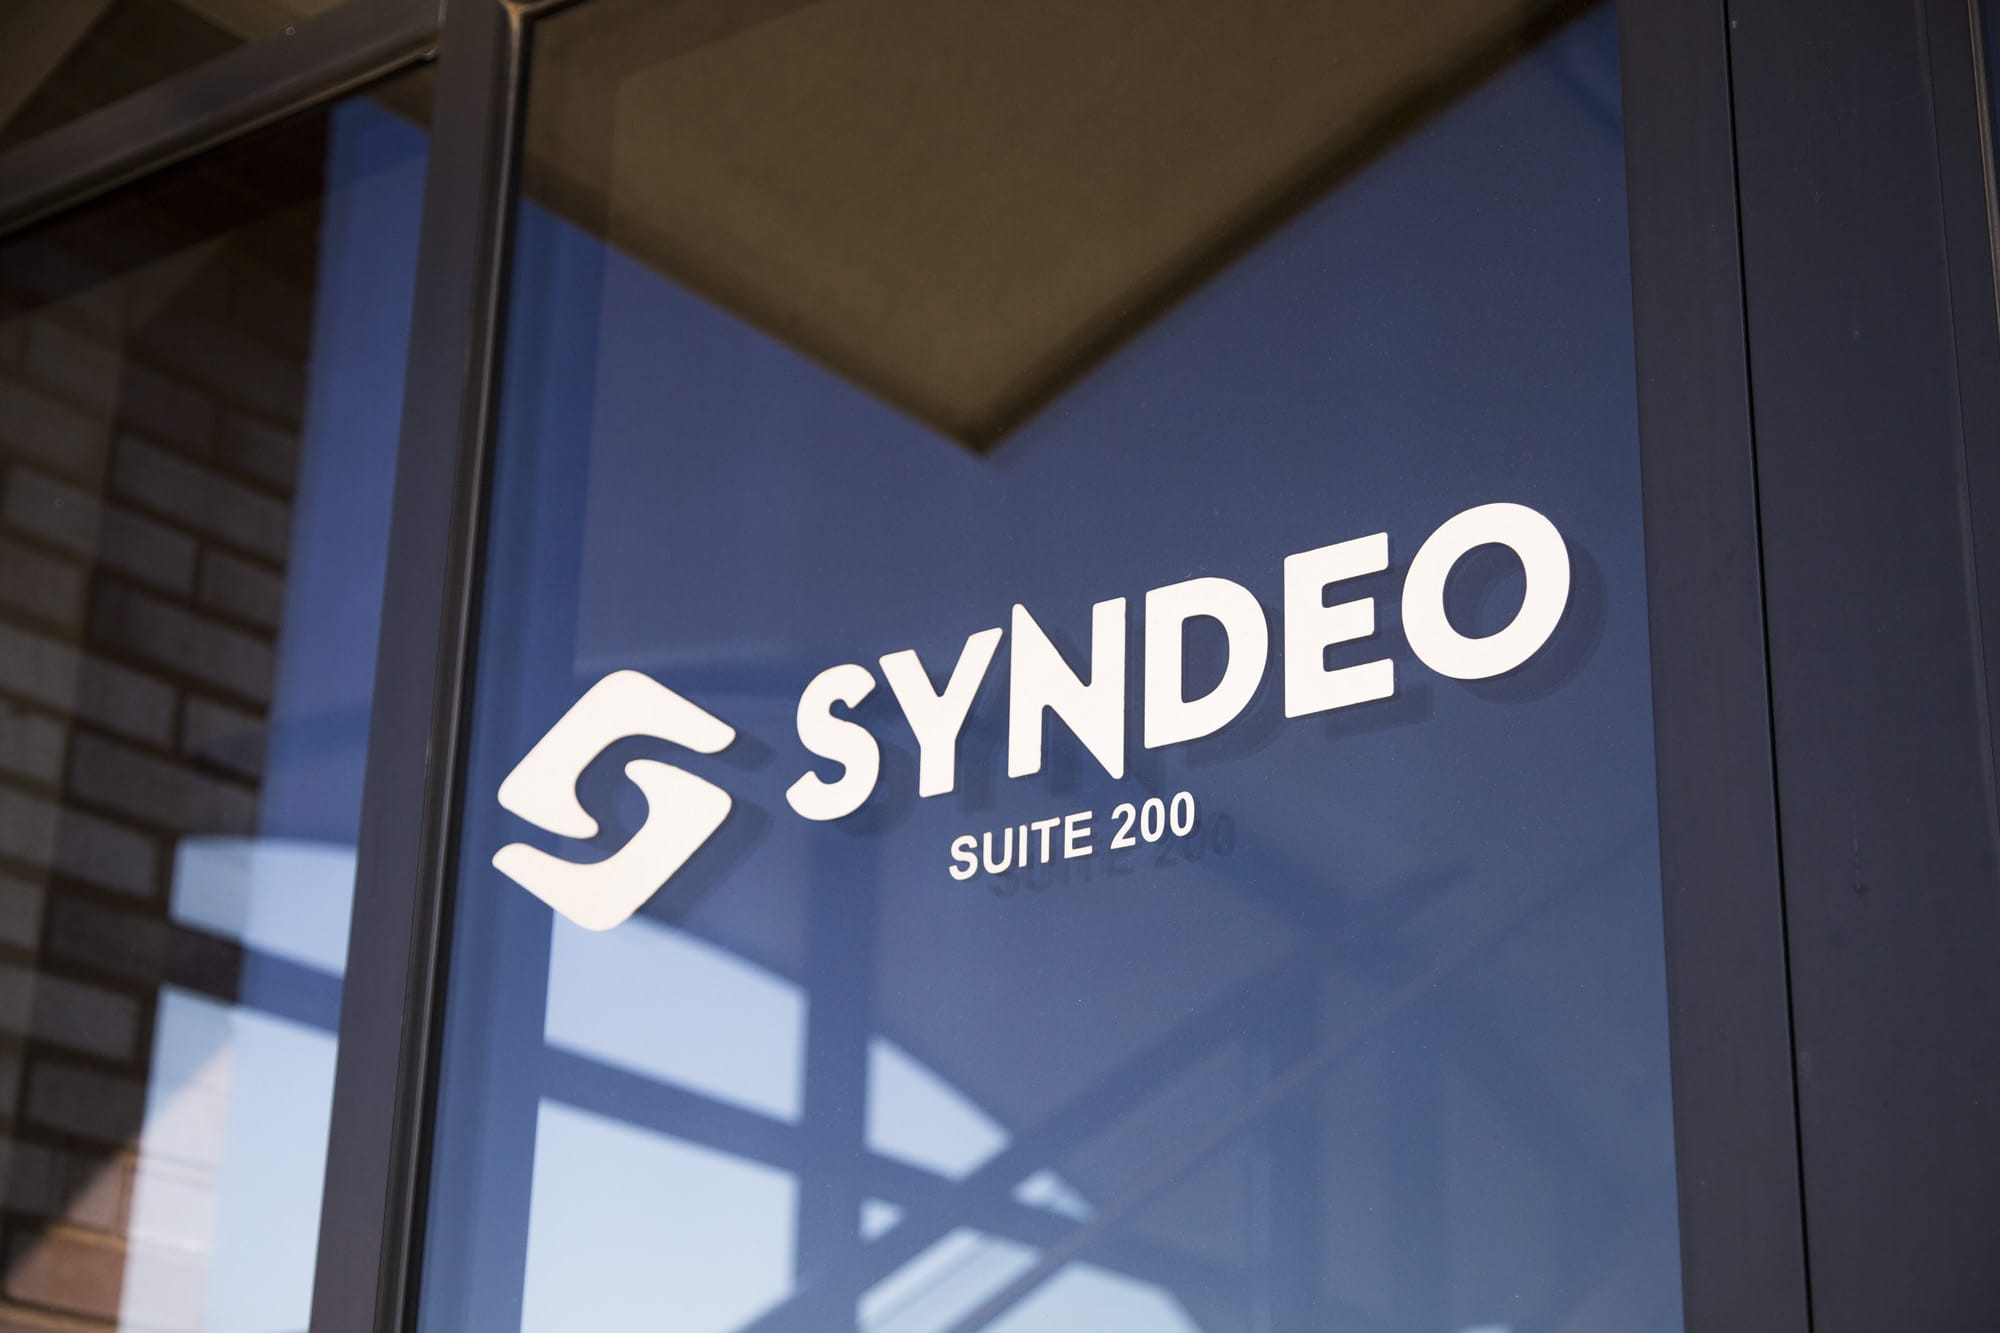 Syndeo selected for Wichita Business Journal's Innovation Awards